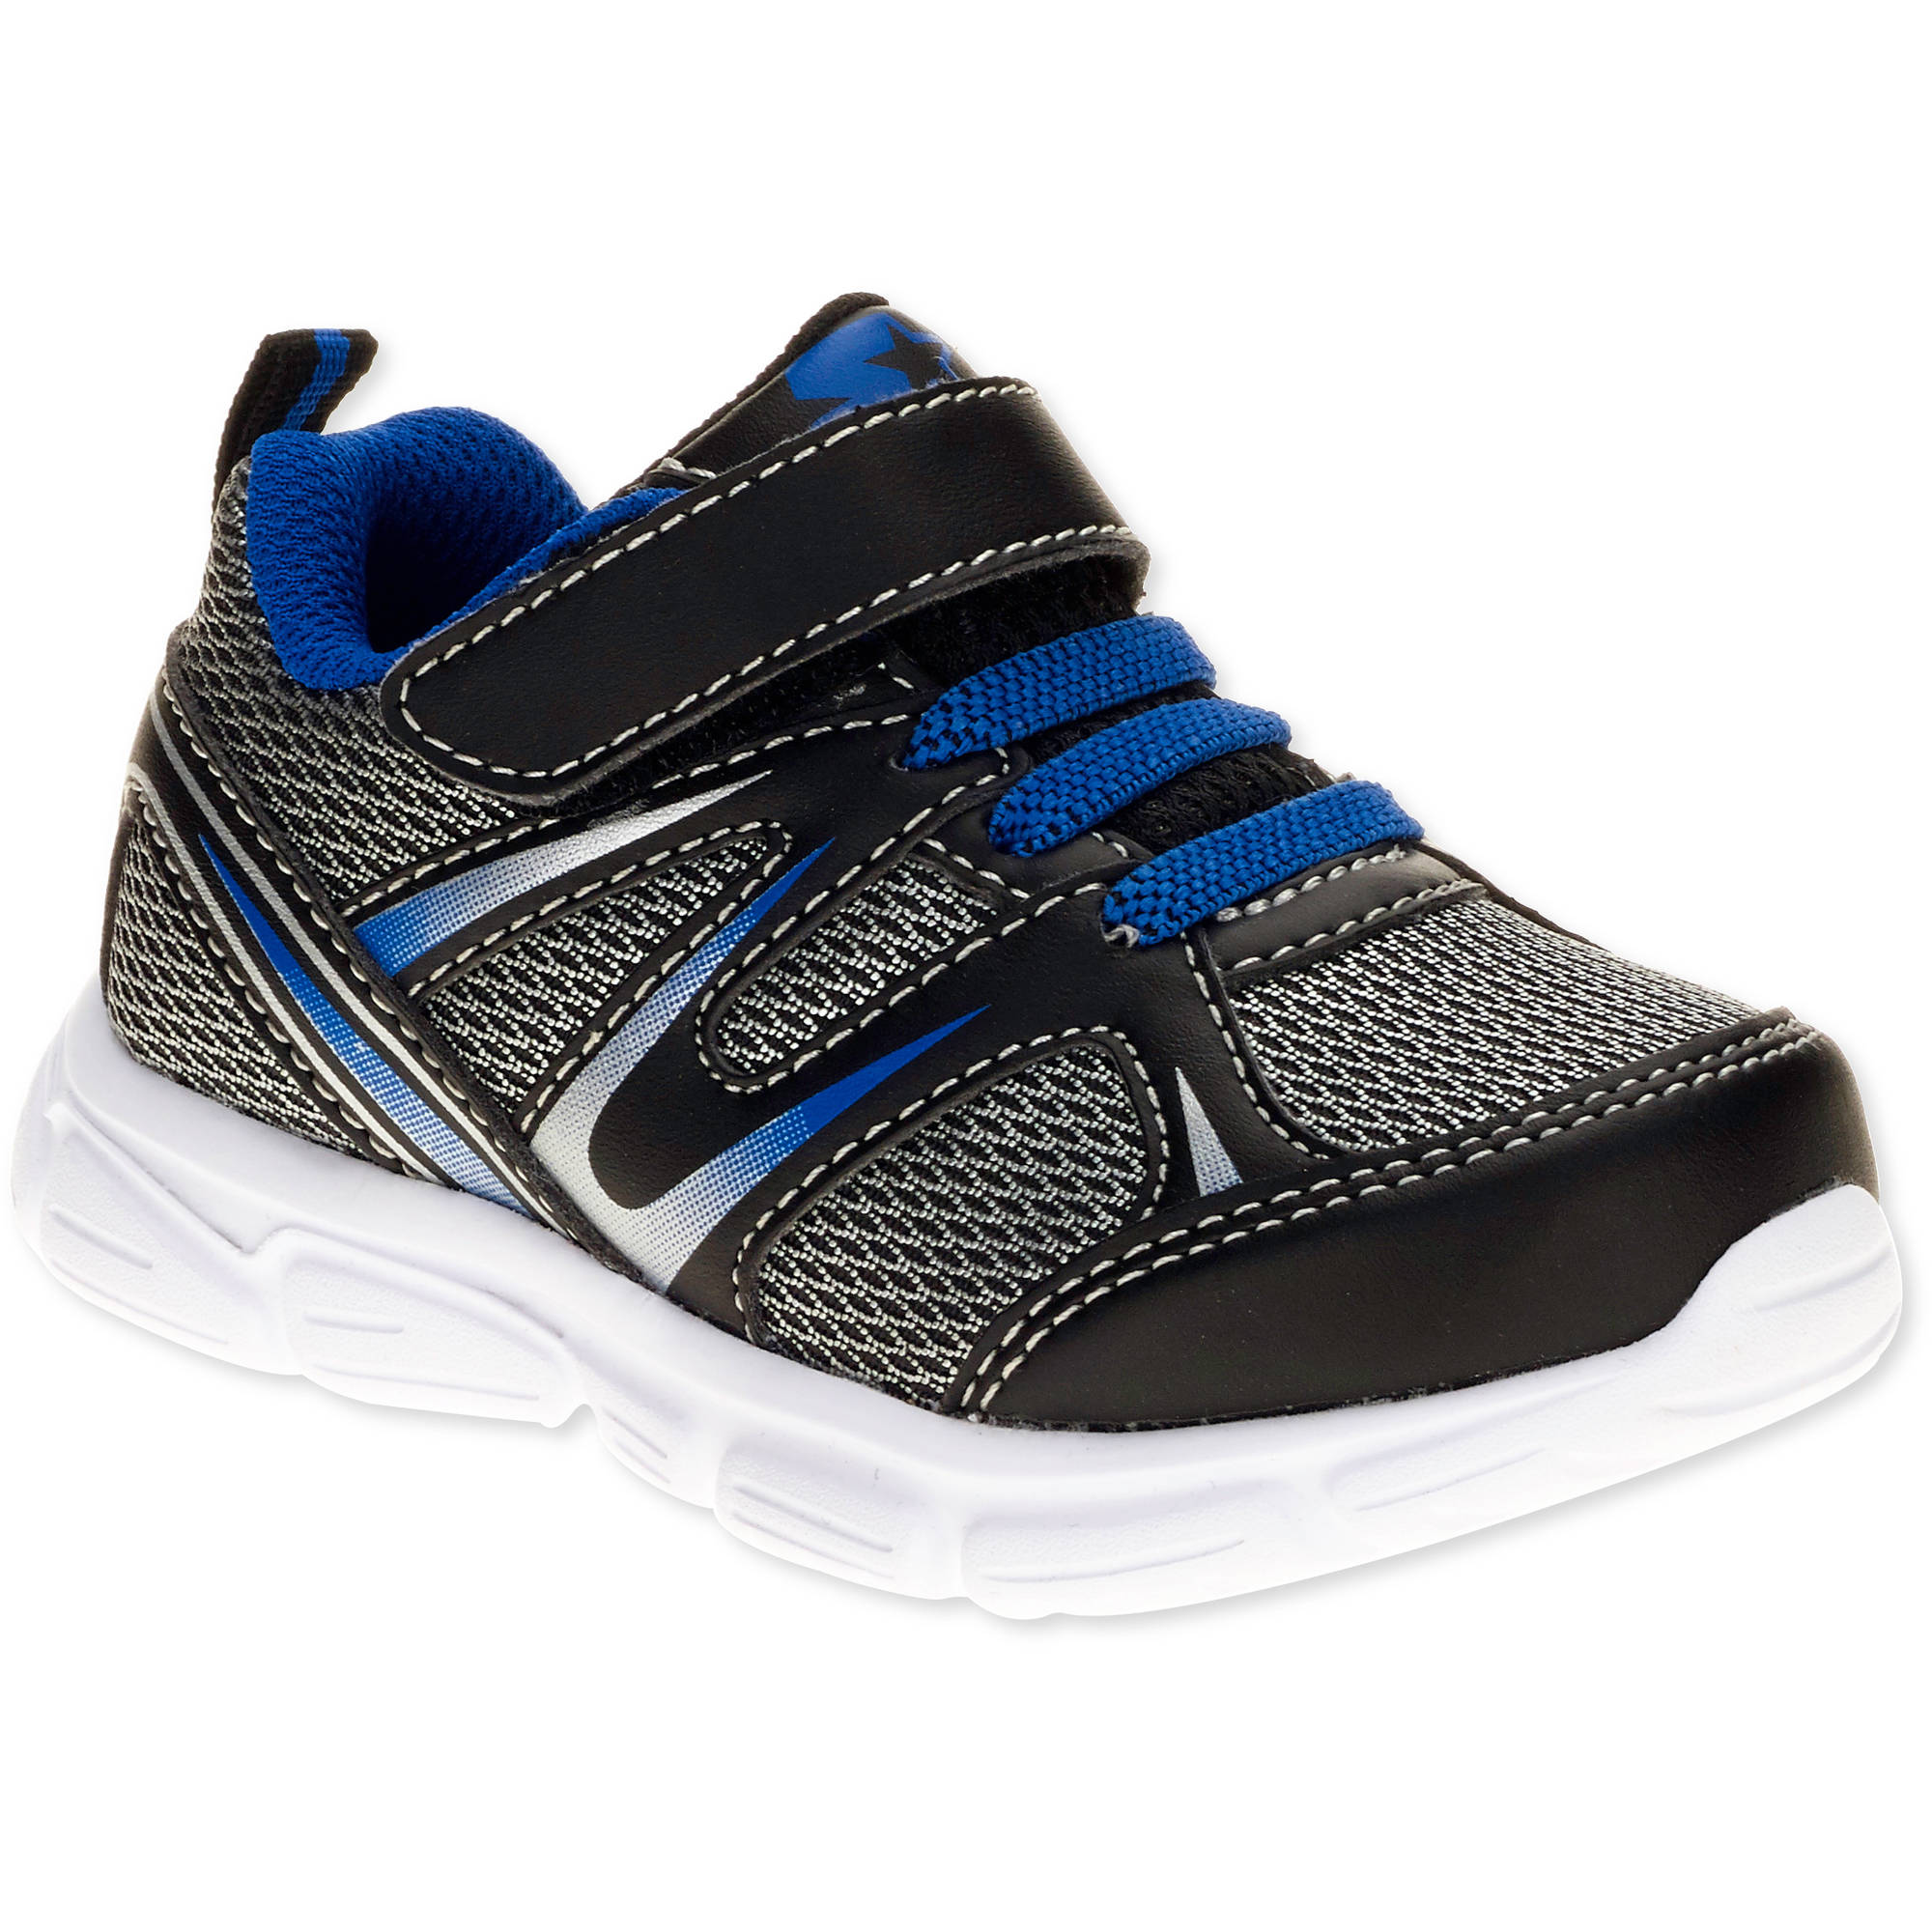 Starter Toddler Boys' Lightweight Athletic Shoe